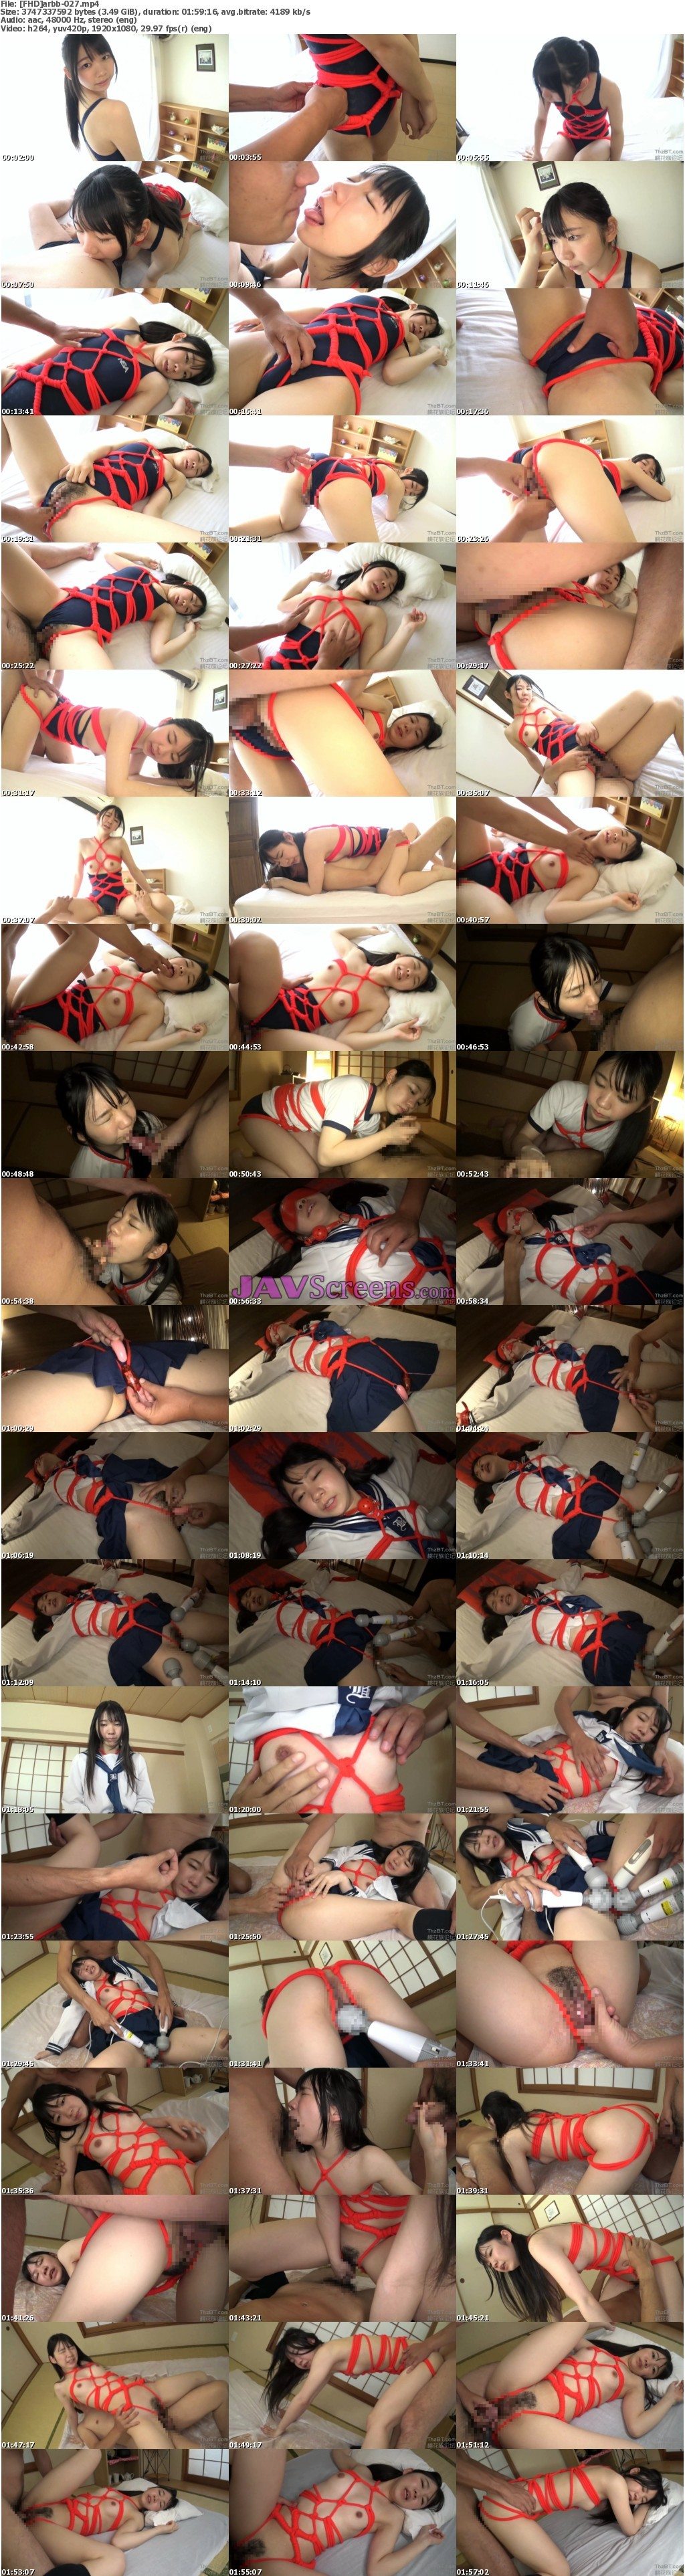 ARBB-027.jpg - JAV Screenshot